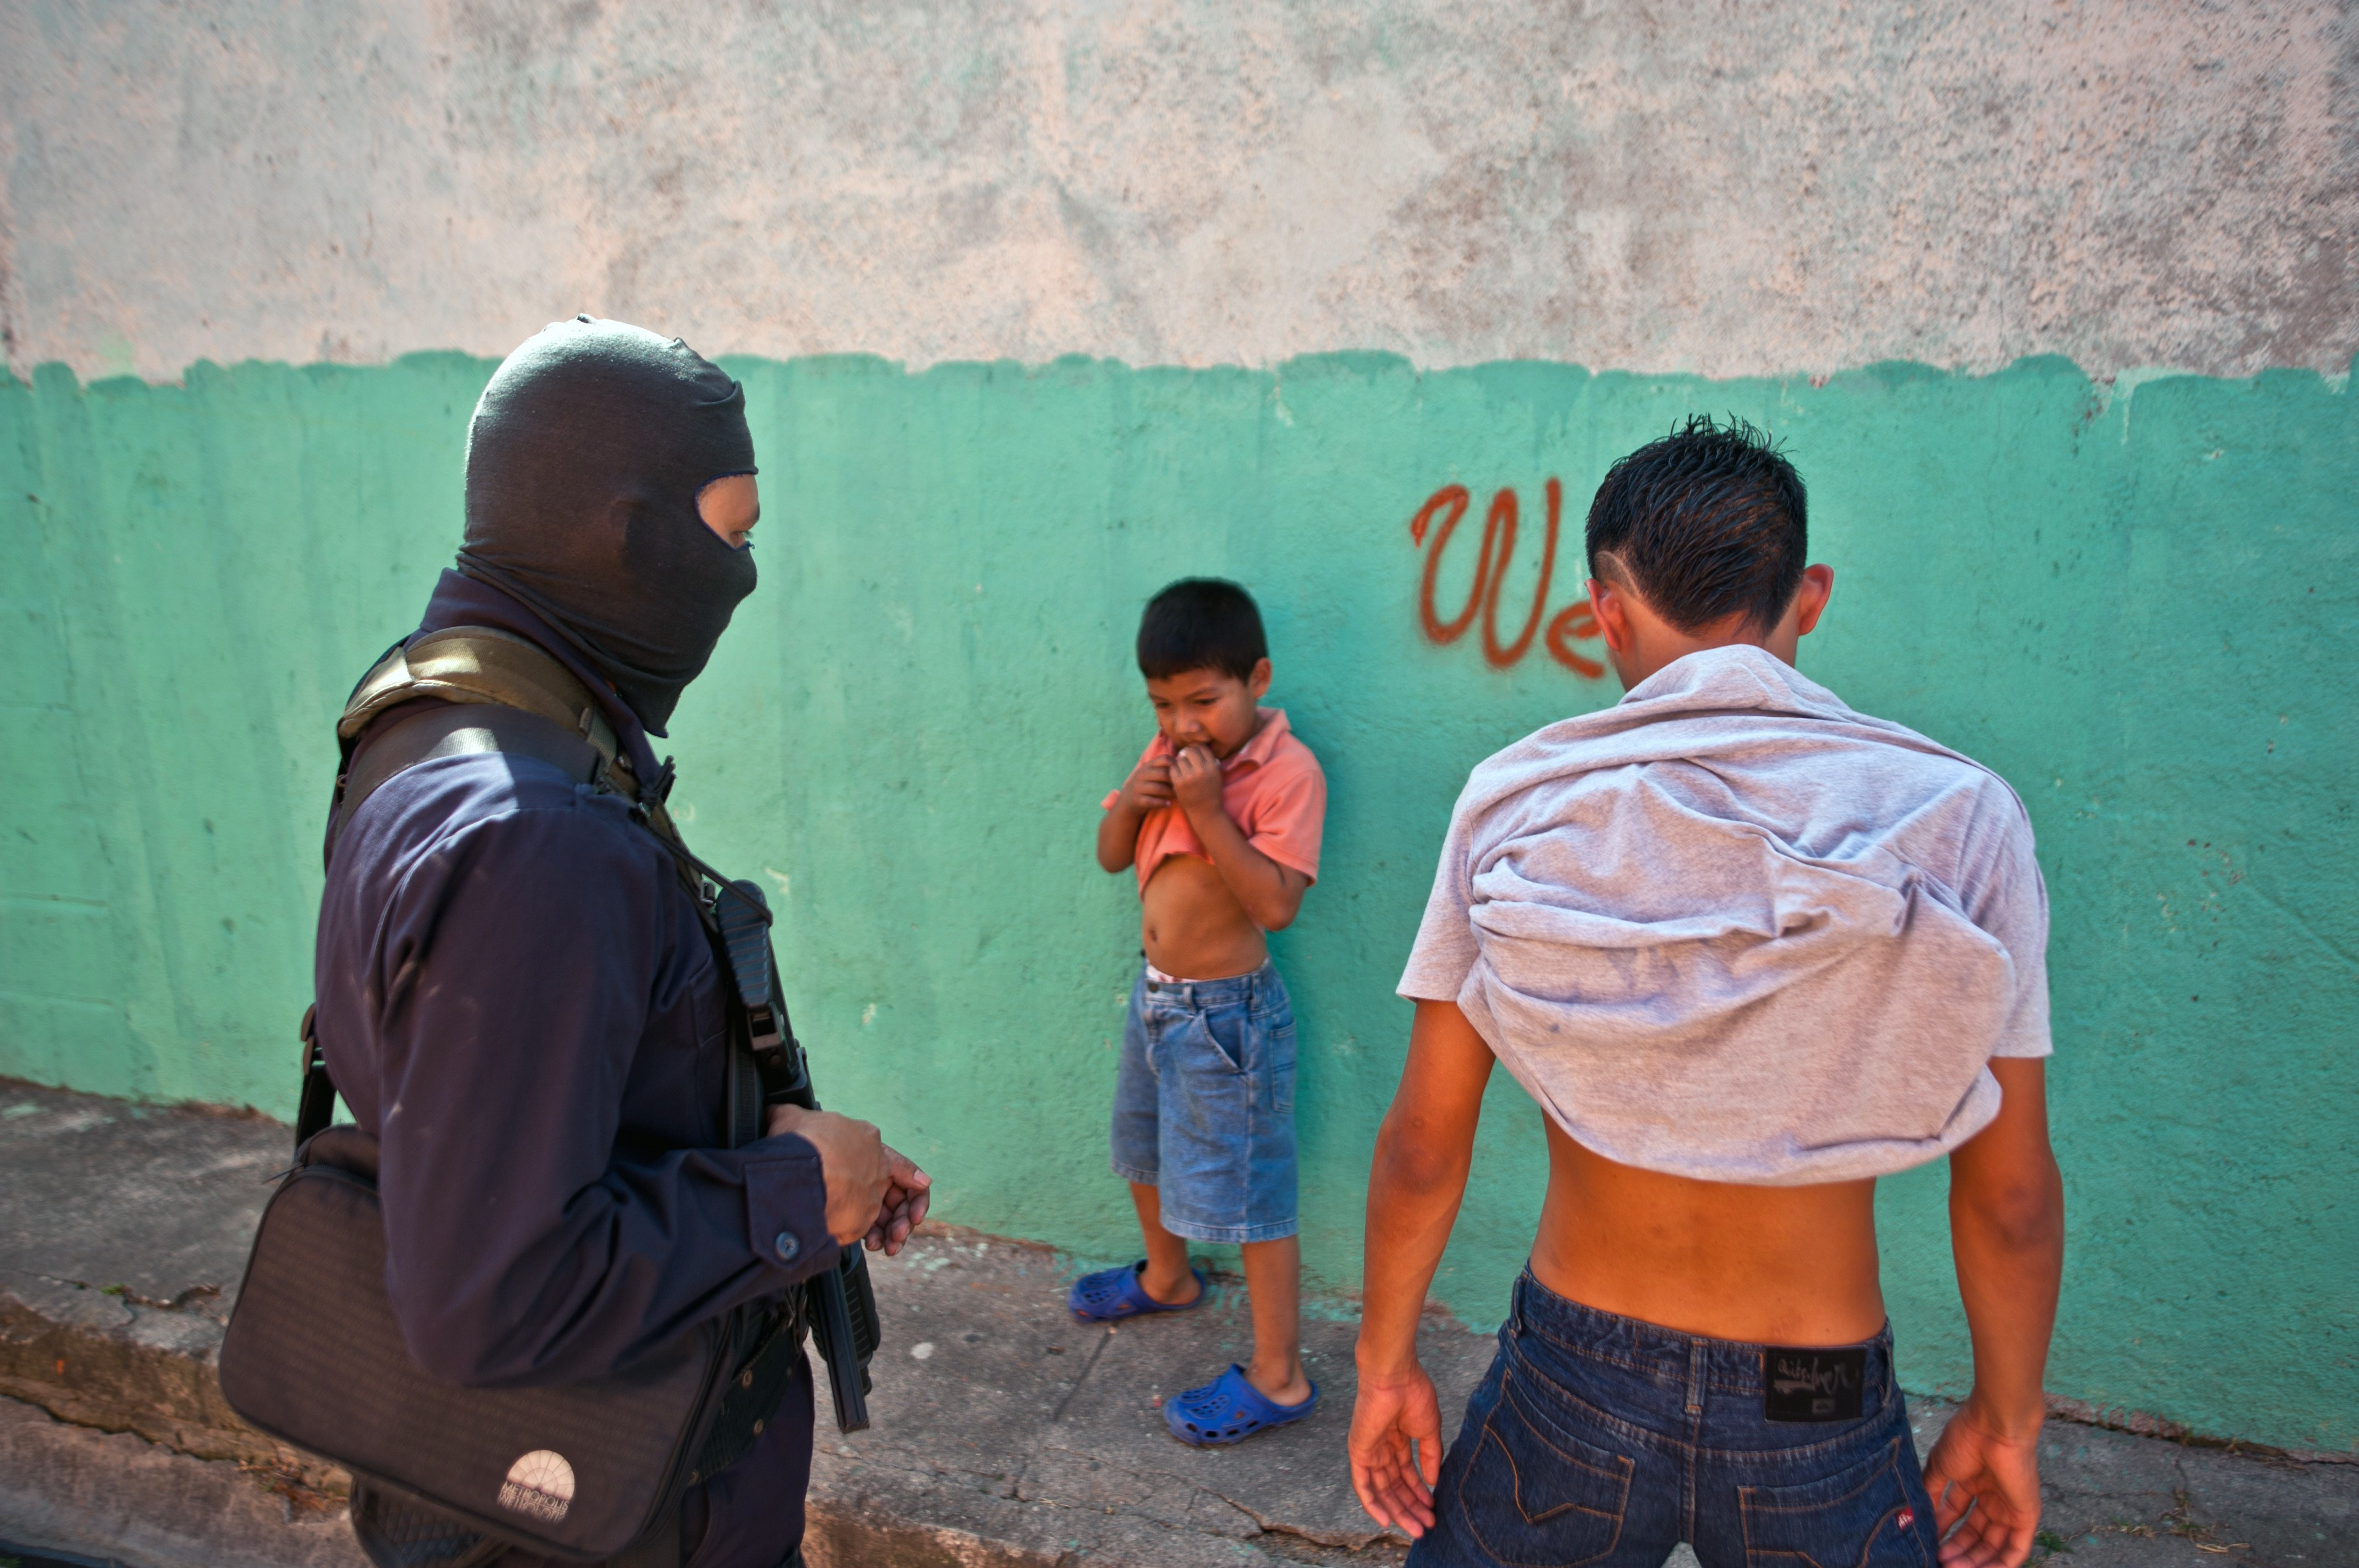 a research on gangs and violence in america Some of these minors are actually fleeing gang violence in their own  gang  problem in the united states, said sonja wolf, a researcher with.